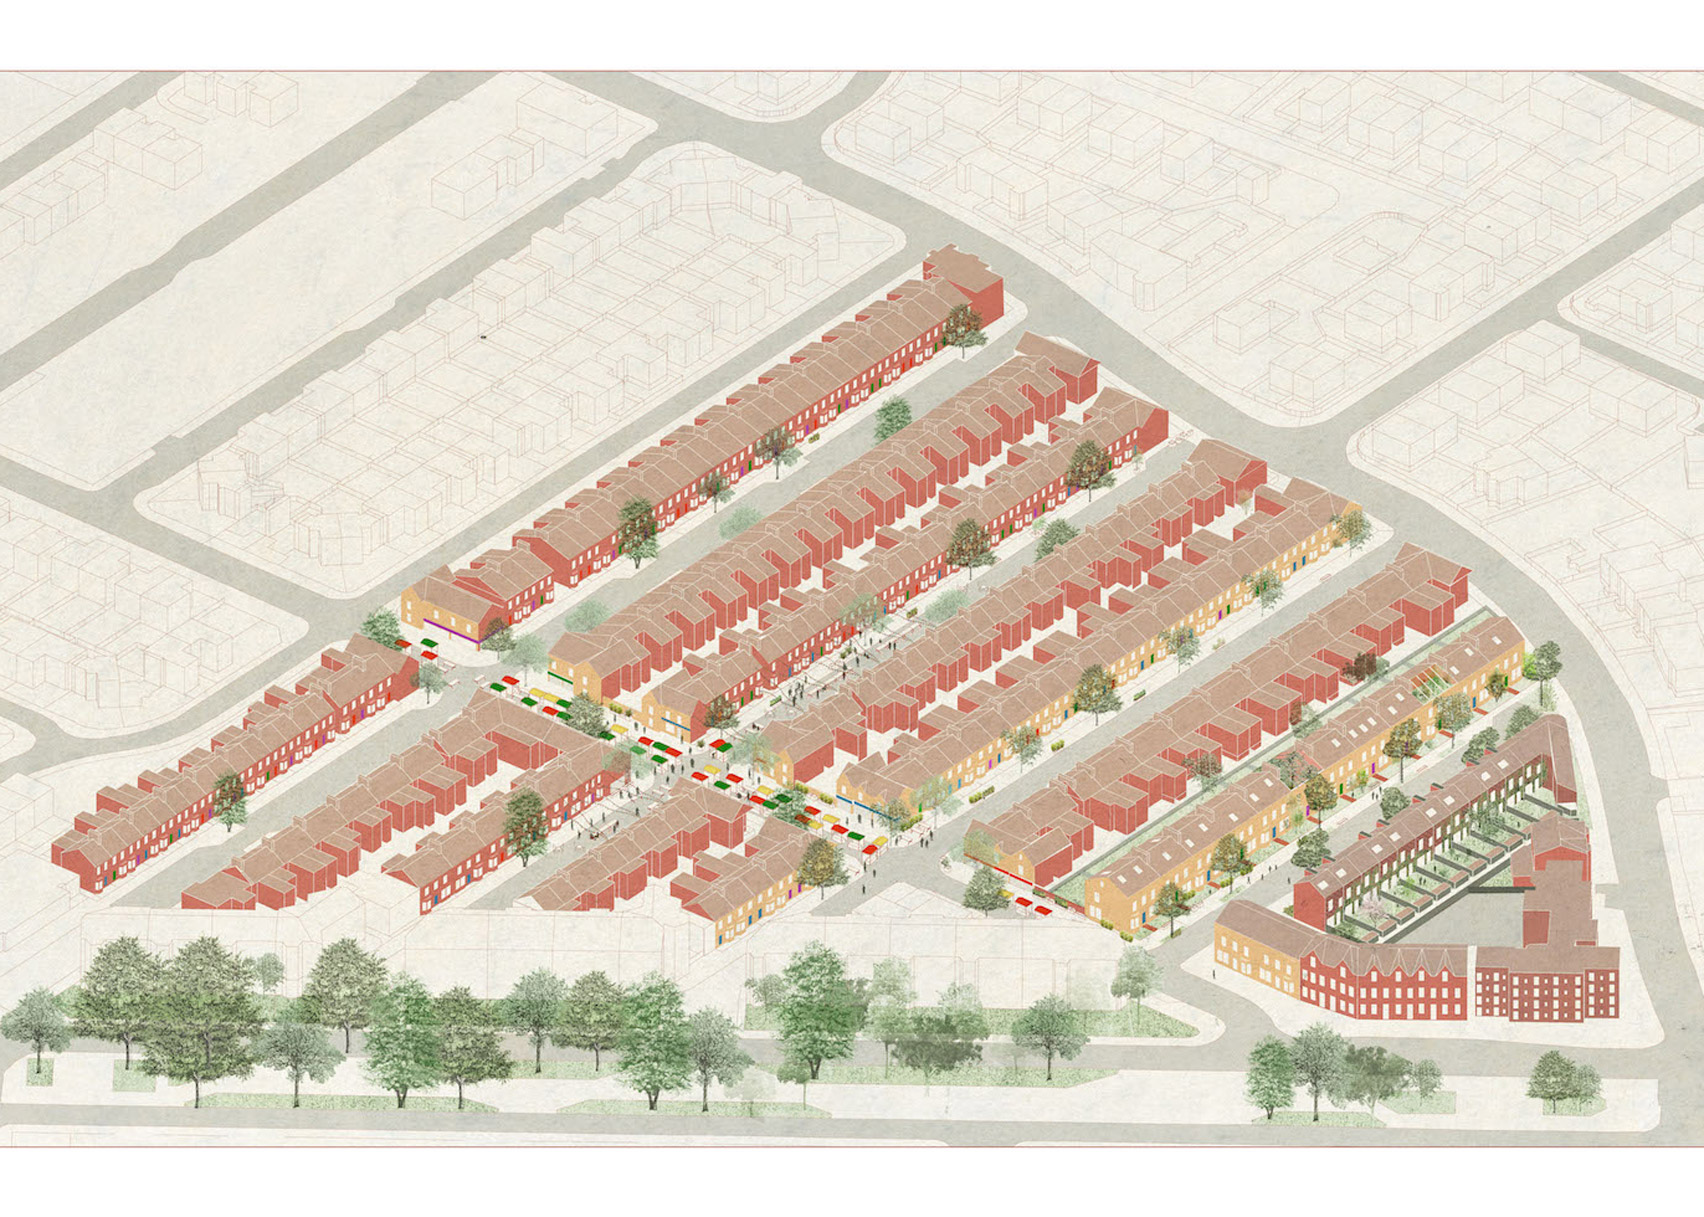 Granby Four Streets, Liverpool, by Assemble